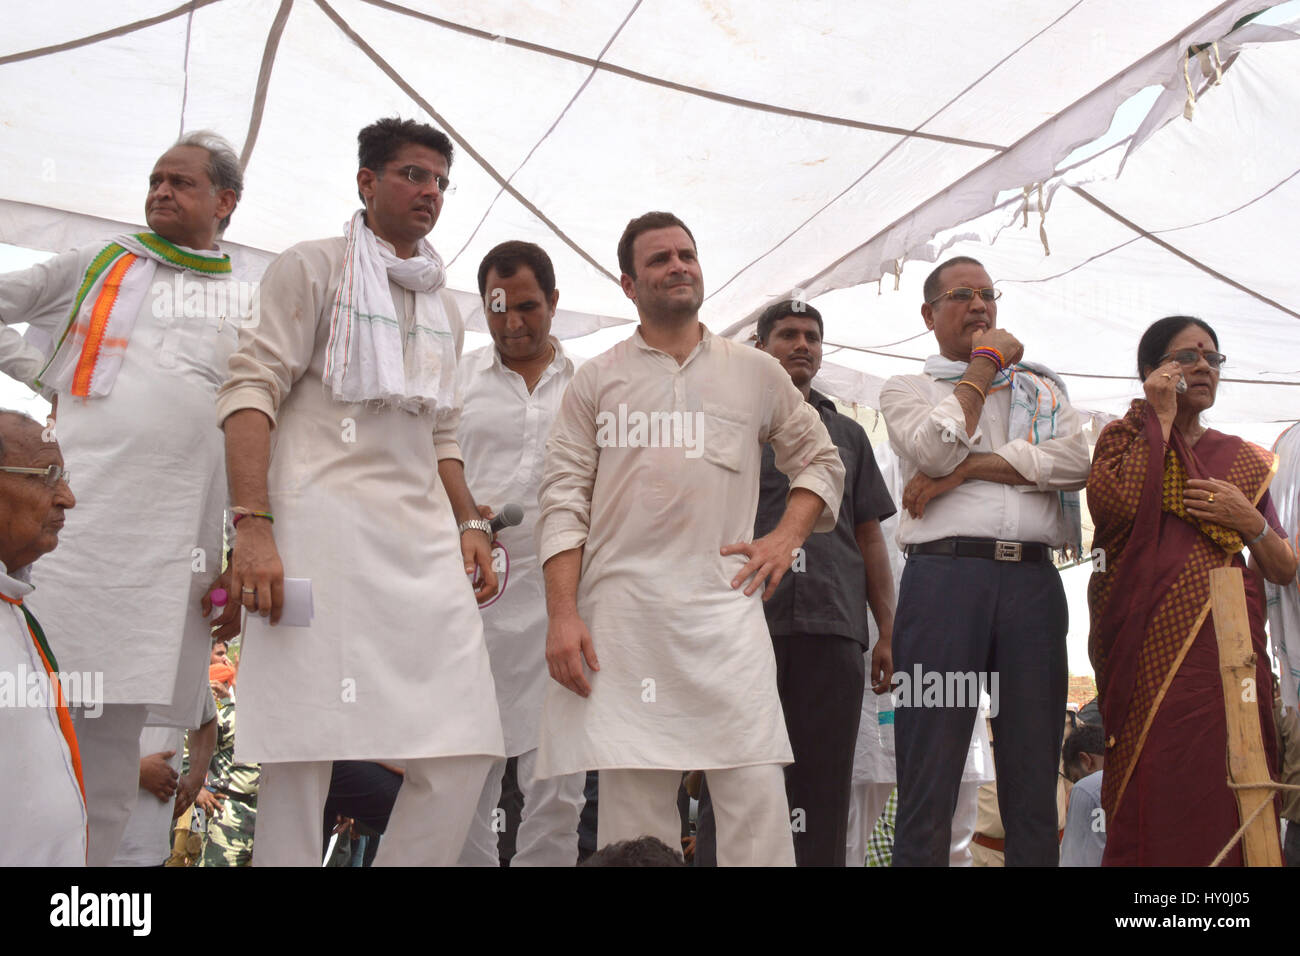 Indian national congress party members, rahul gandhi, sachin pilot and ashok gehlot, india, asia - Stock Image